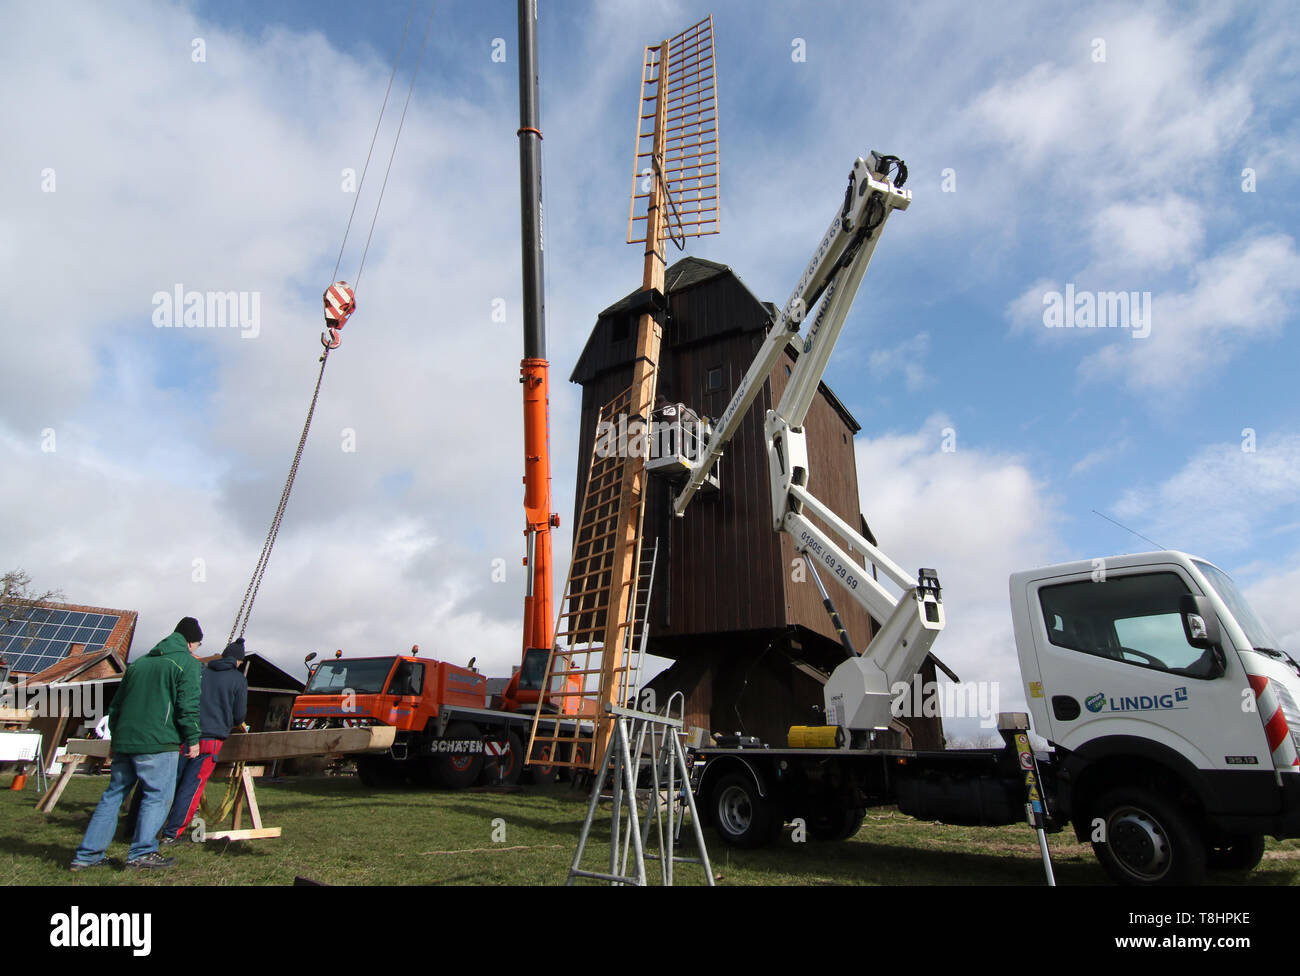 Danstedt, Germany. 11th Mar, 2019. Windmill blades are mounted at the Bockwindmühle in Danstedt. The functioning mill is more than 200 years old. Built in 1817, it was rebuilt after a fire in 1835. The mill was restored in 1989. Today it is run by an association and is also put into operation every year on the occasion of the traditional mill day. After a break in operations, the windmill is now getting new blades after 30 years. Credit: Matthias Bein/dpa-Zentralbild/ZB/dpa/Alamy Live News - Stock Image